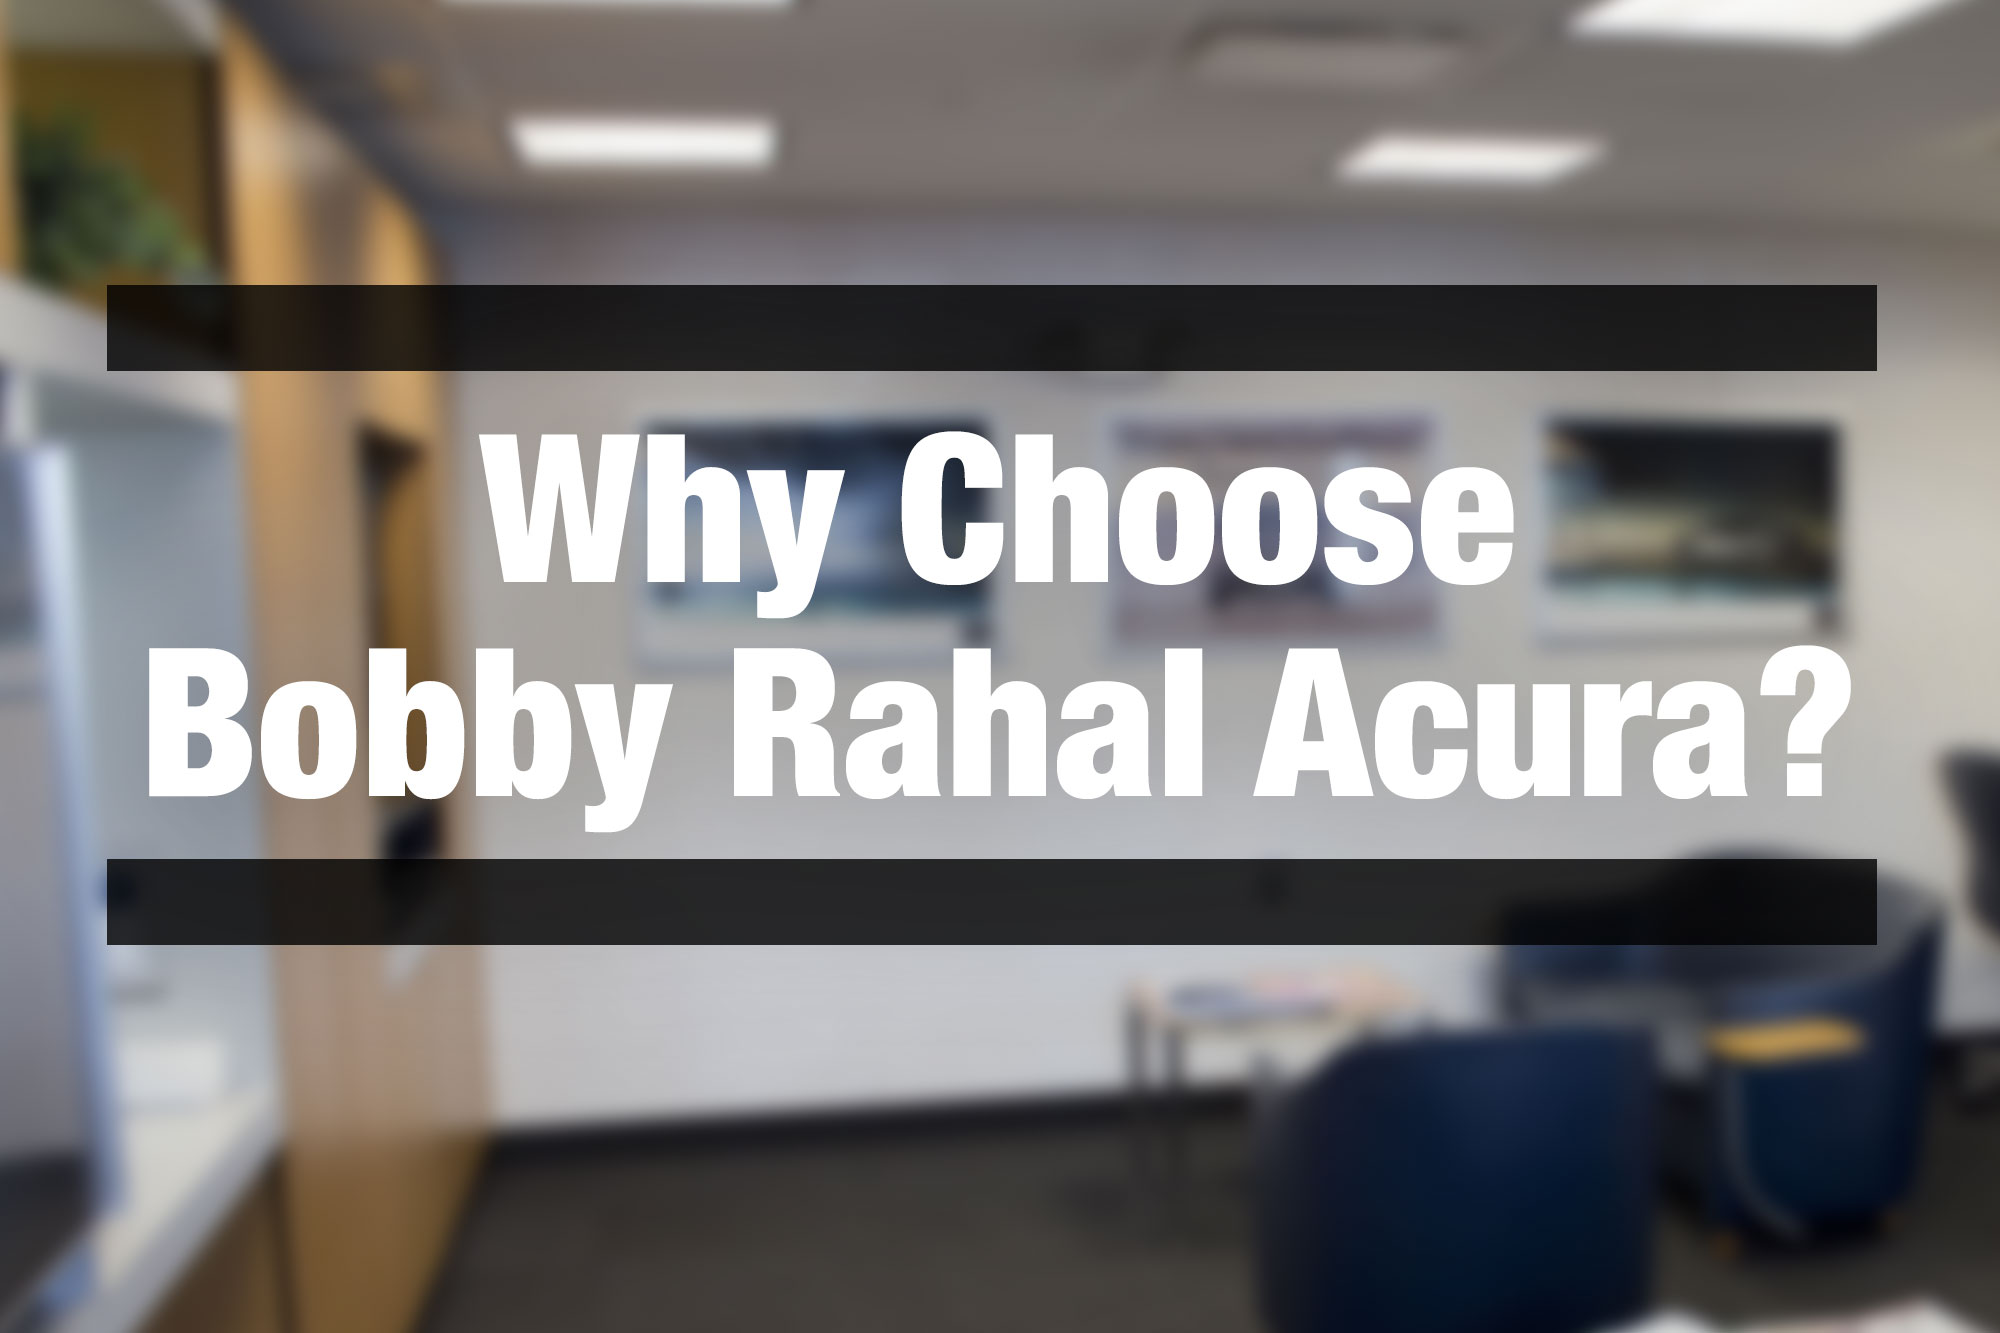 Why Choose Bobby Rahal Acura in Mechanicsburg, PA